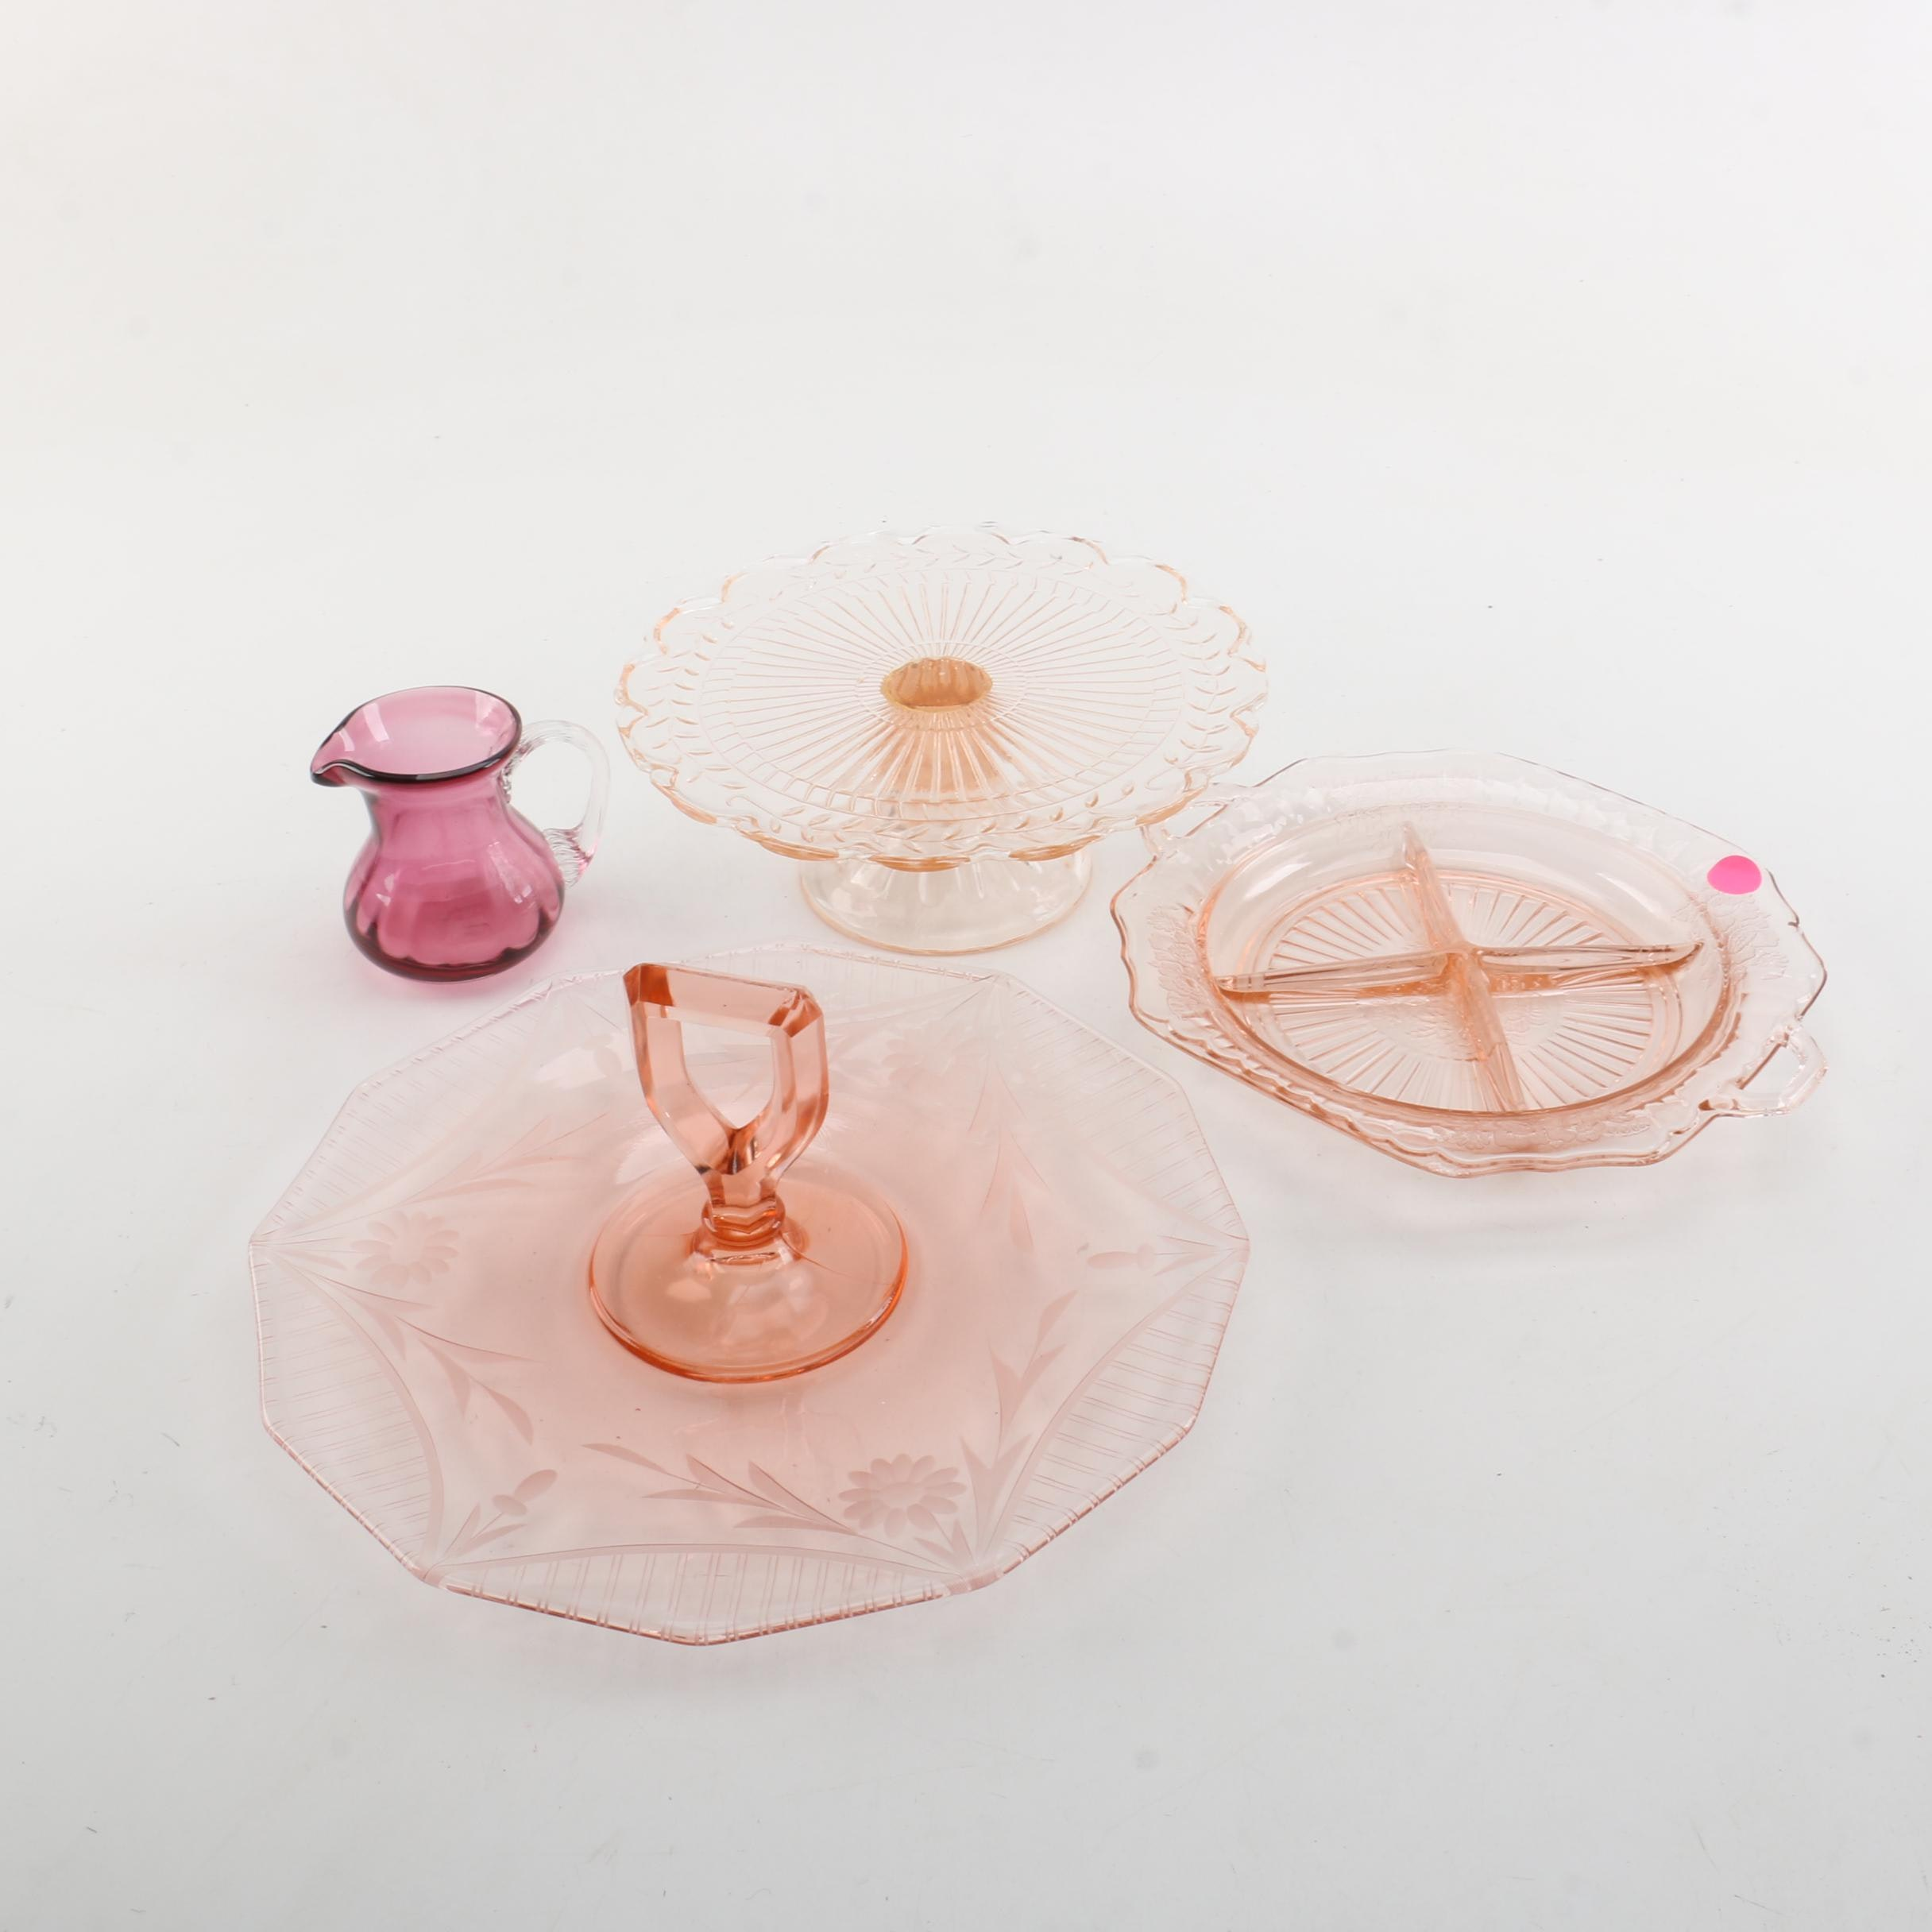 Glass Serveware including Depression Glass